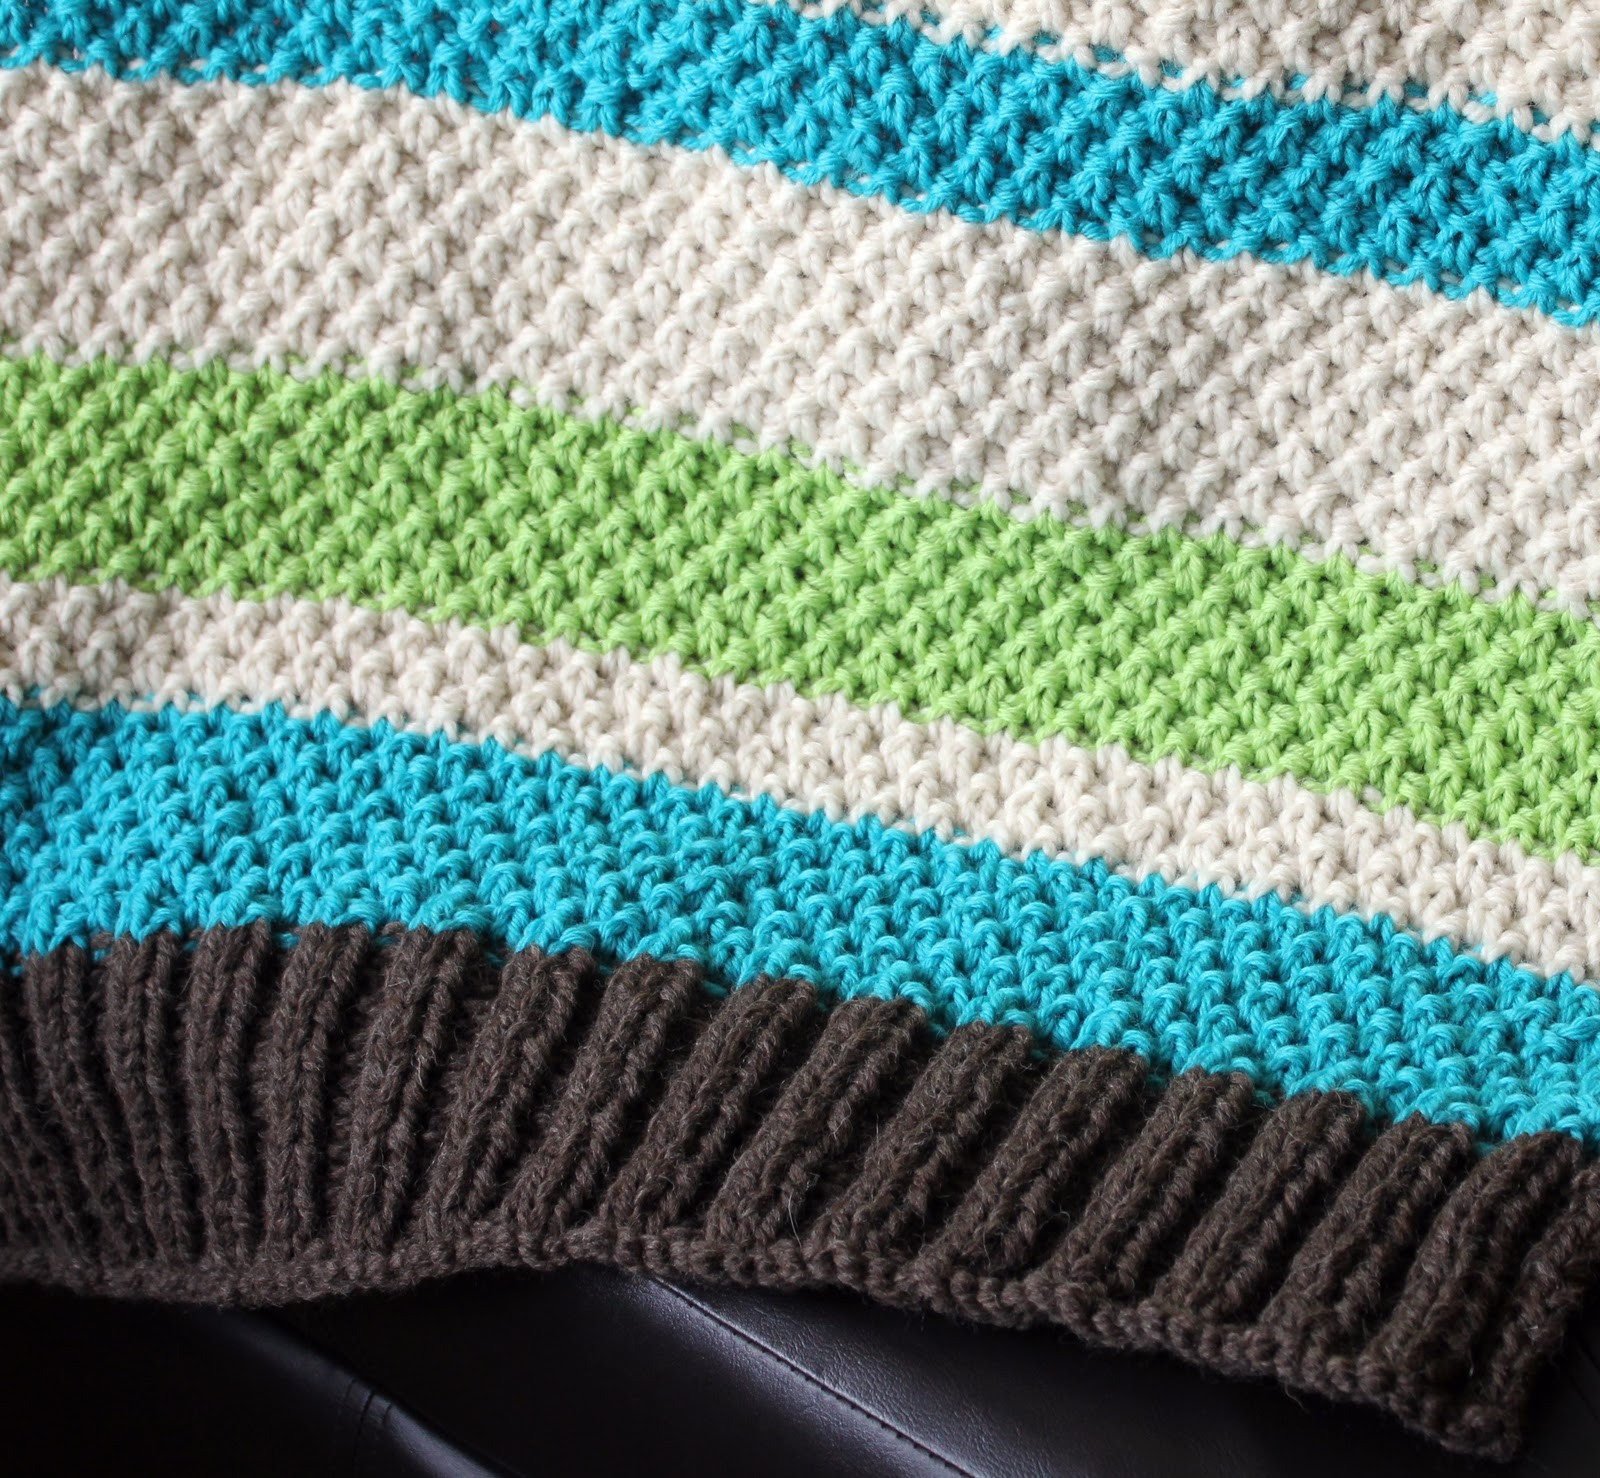 Knitting Patterns for Beginners Unique Easy Baby Blanket Knitting Pattern for Beginners with Of Superb 47 Pics Knitting Patterns for Beginners